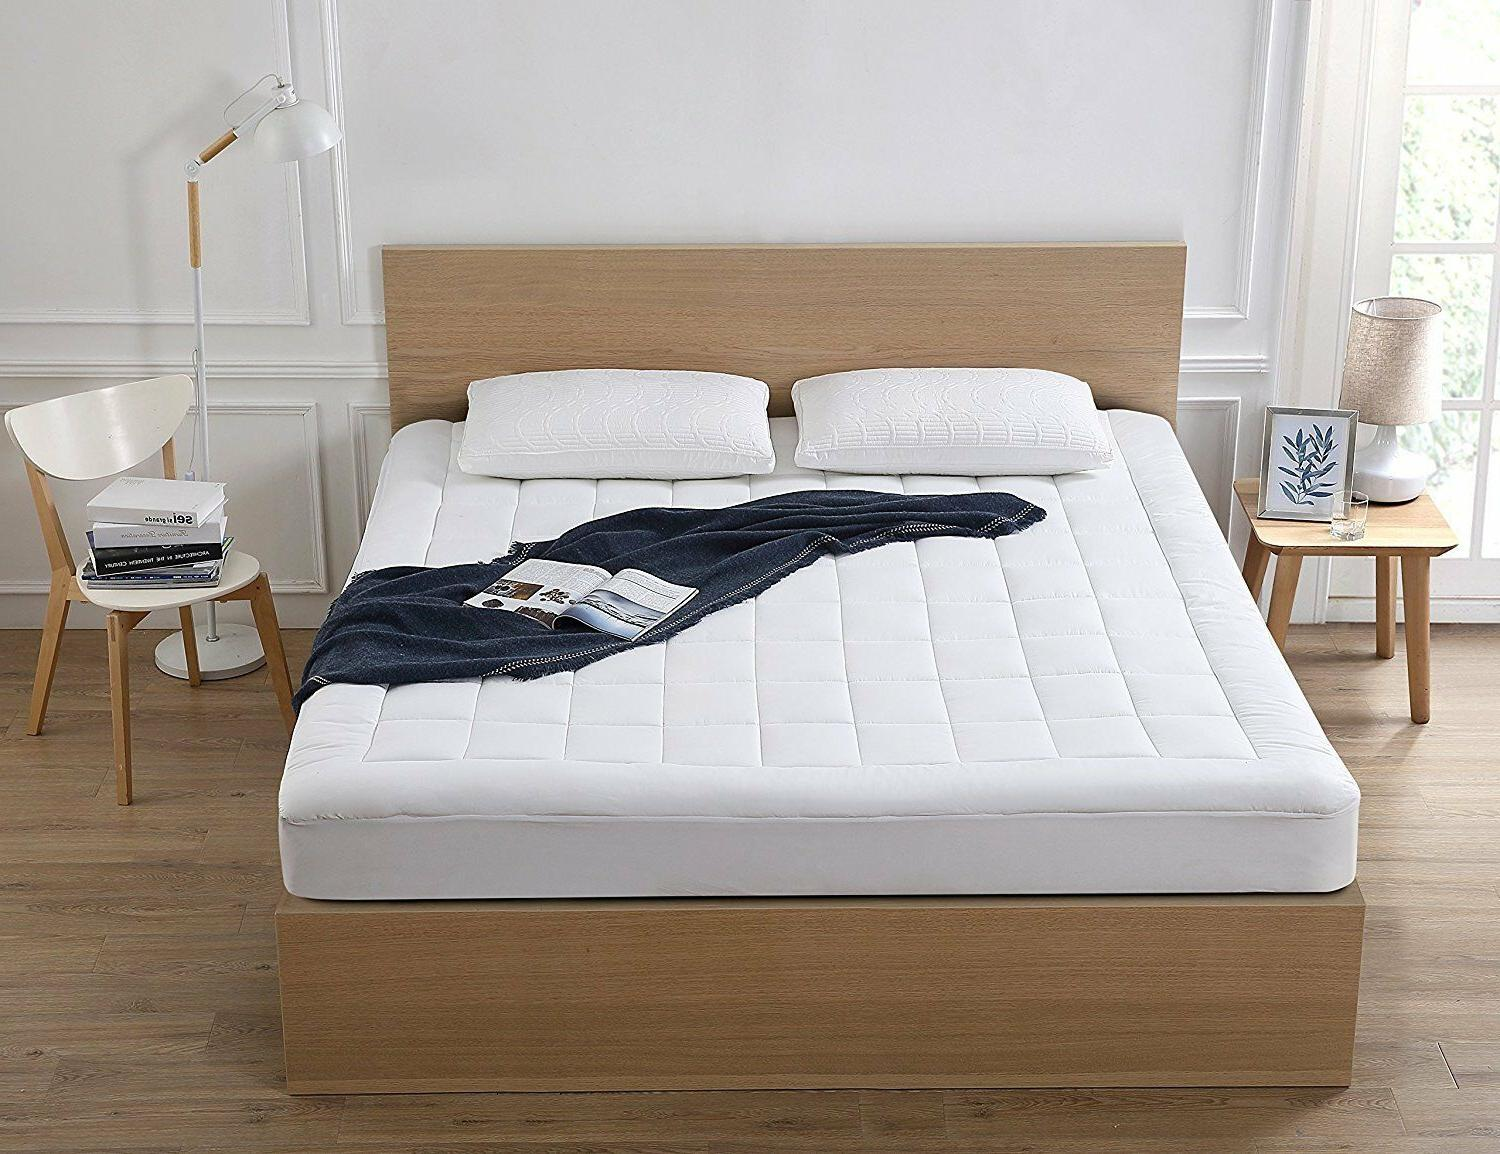 Oaskys Pad Cooling Topper Combed Cotton Top Pillow Top